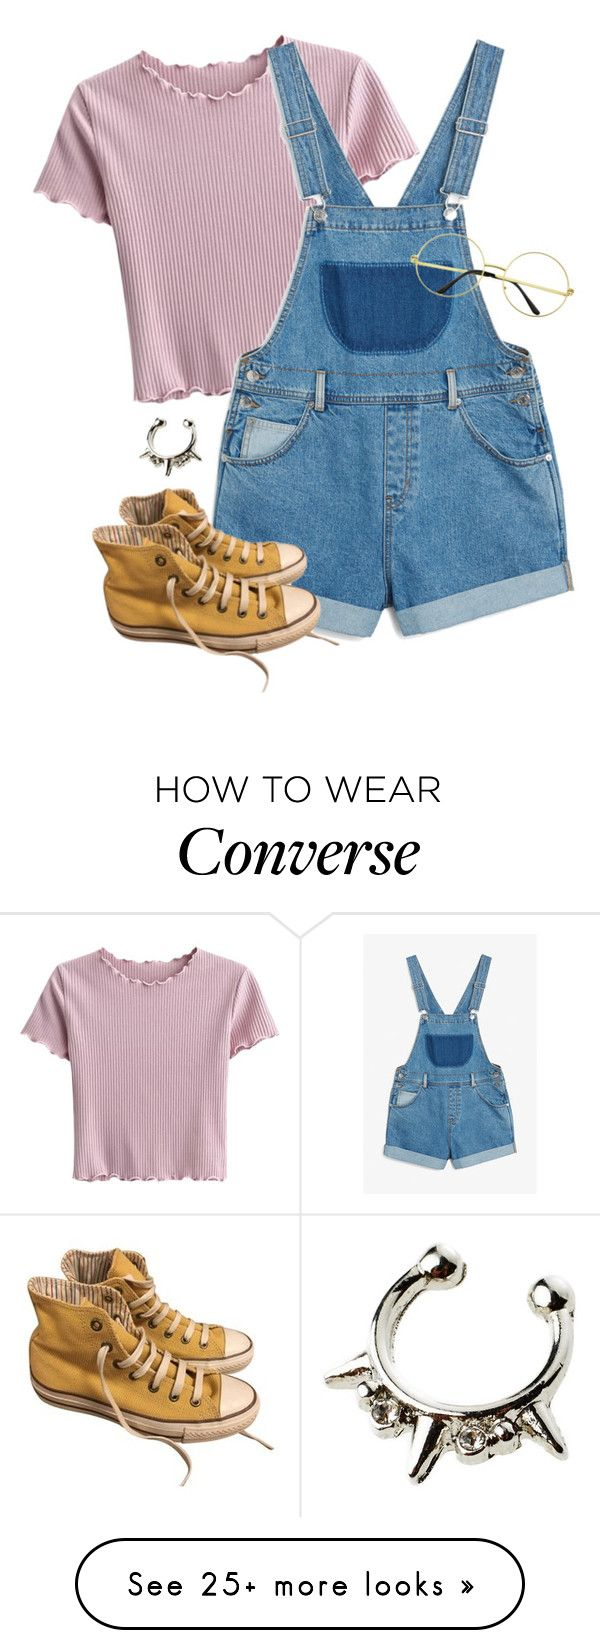 """Untitled #1352"" by grayce-louise on Polyvore featuring Monki and Converse"